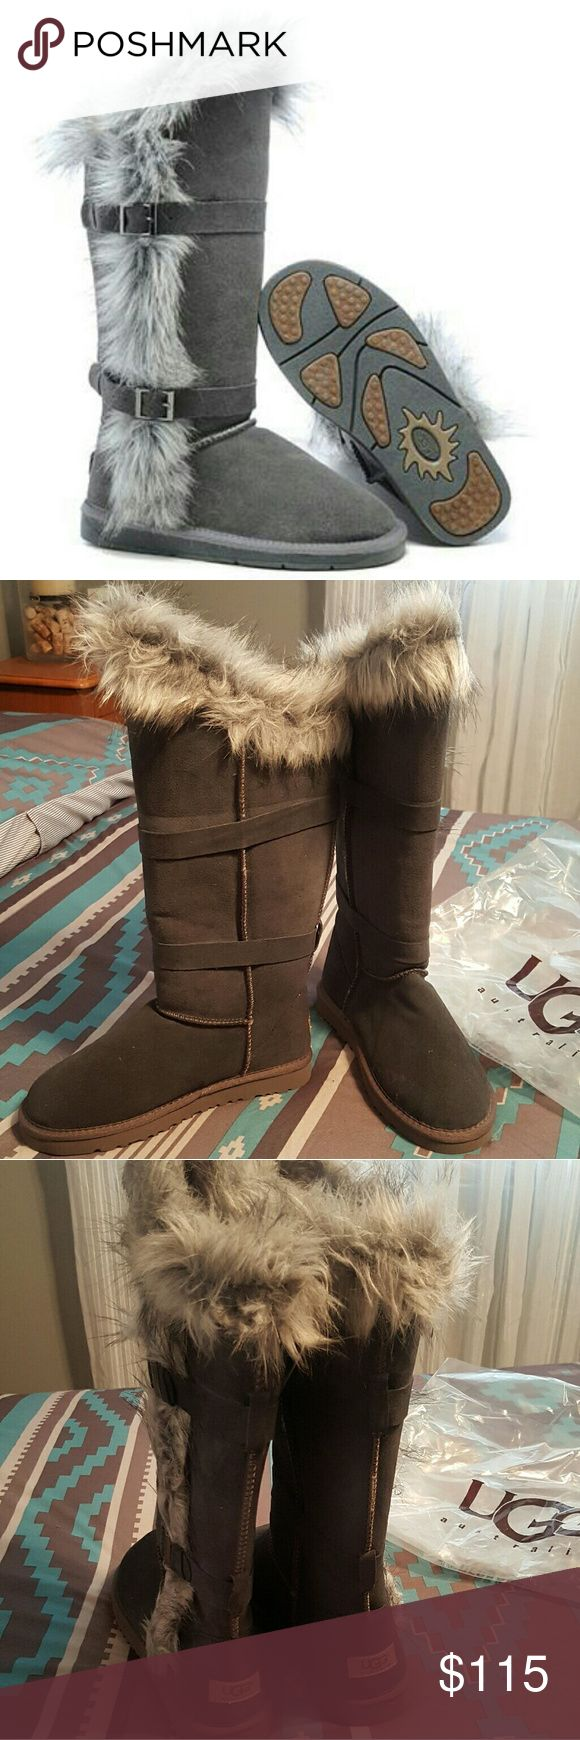 NWT Ugg Classic Tall Boots Fox fur tall grey boots. UGG Shoes Winter & Rain Boots